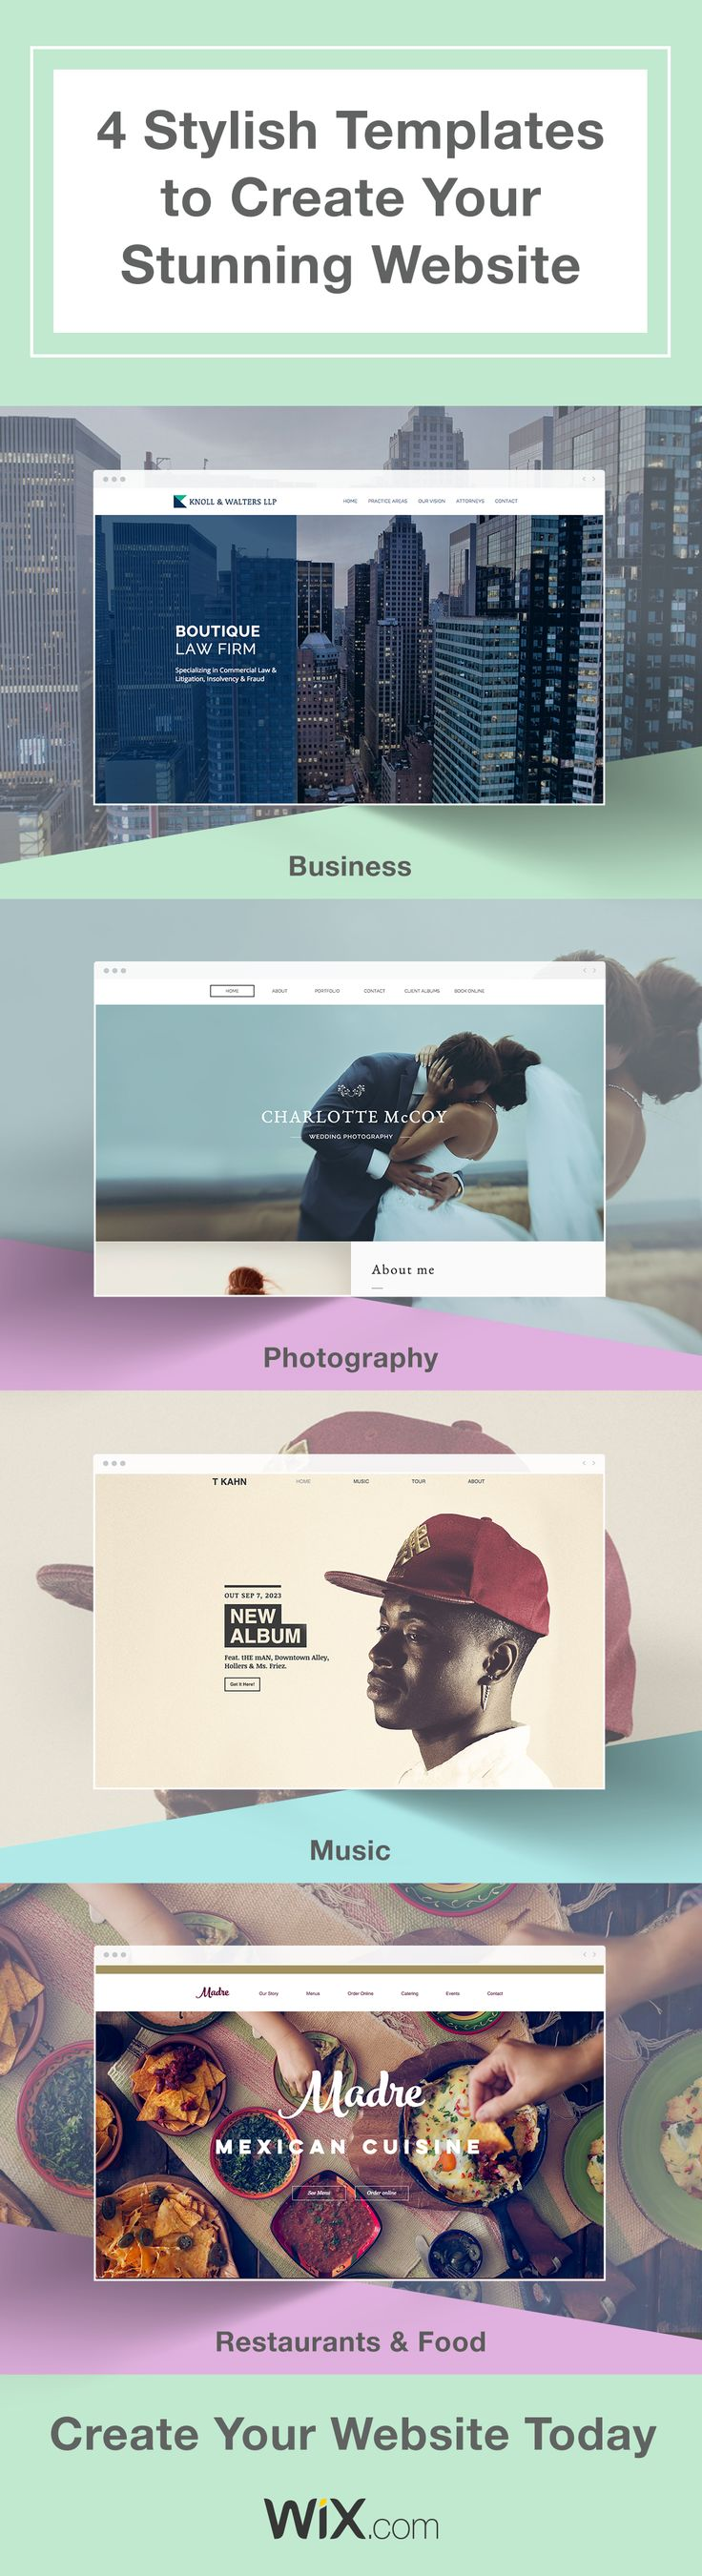 17 Best images about Wix Website Templates on Pinterest | Editor ...